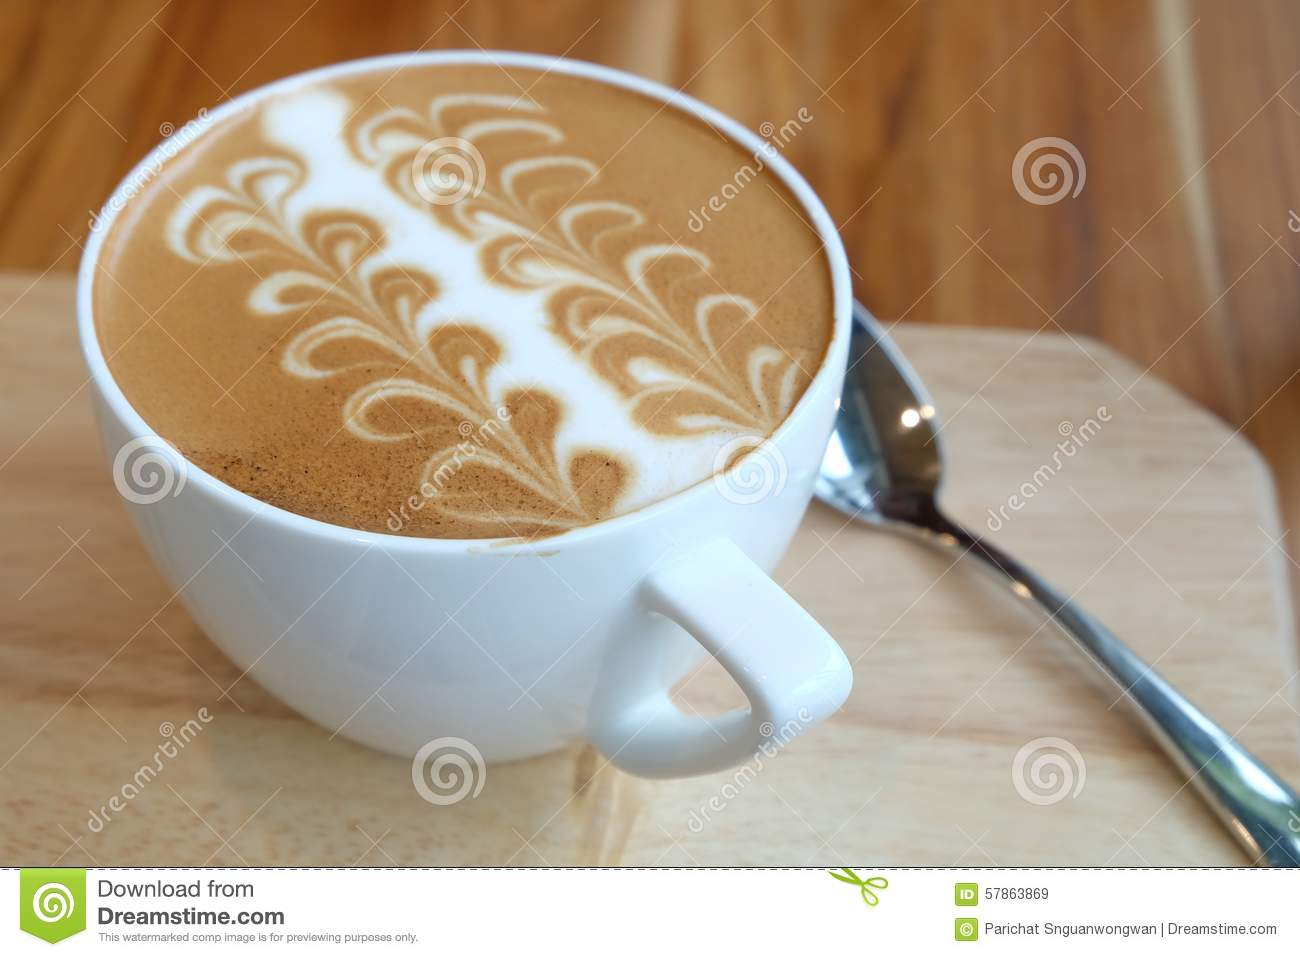 Caffe Latte A Cup Of Caffe Latte Art Stock Image Image Of Cafe Morning